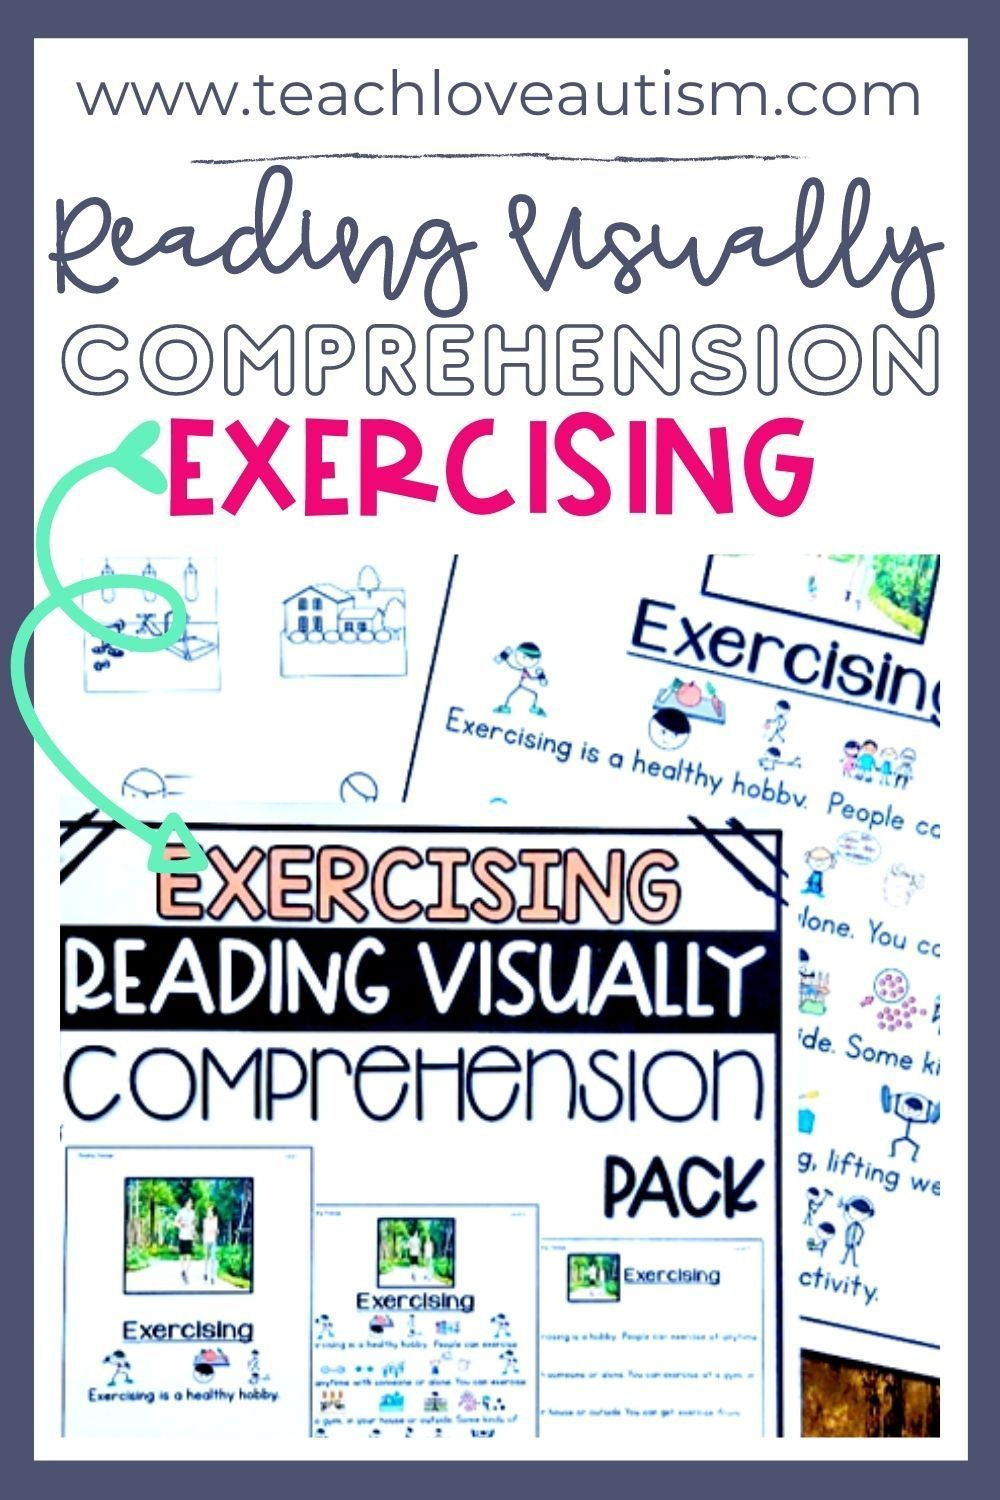 Exercising Reading Visually Comprehension Shop Teach Love Autism In 2021 Special Education Reading Reading Passages Reading Comprehension Activities [ 1500 x 1000 Pixel ]